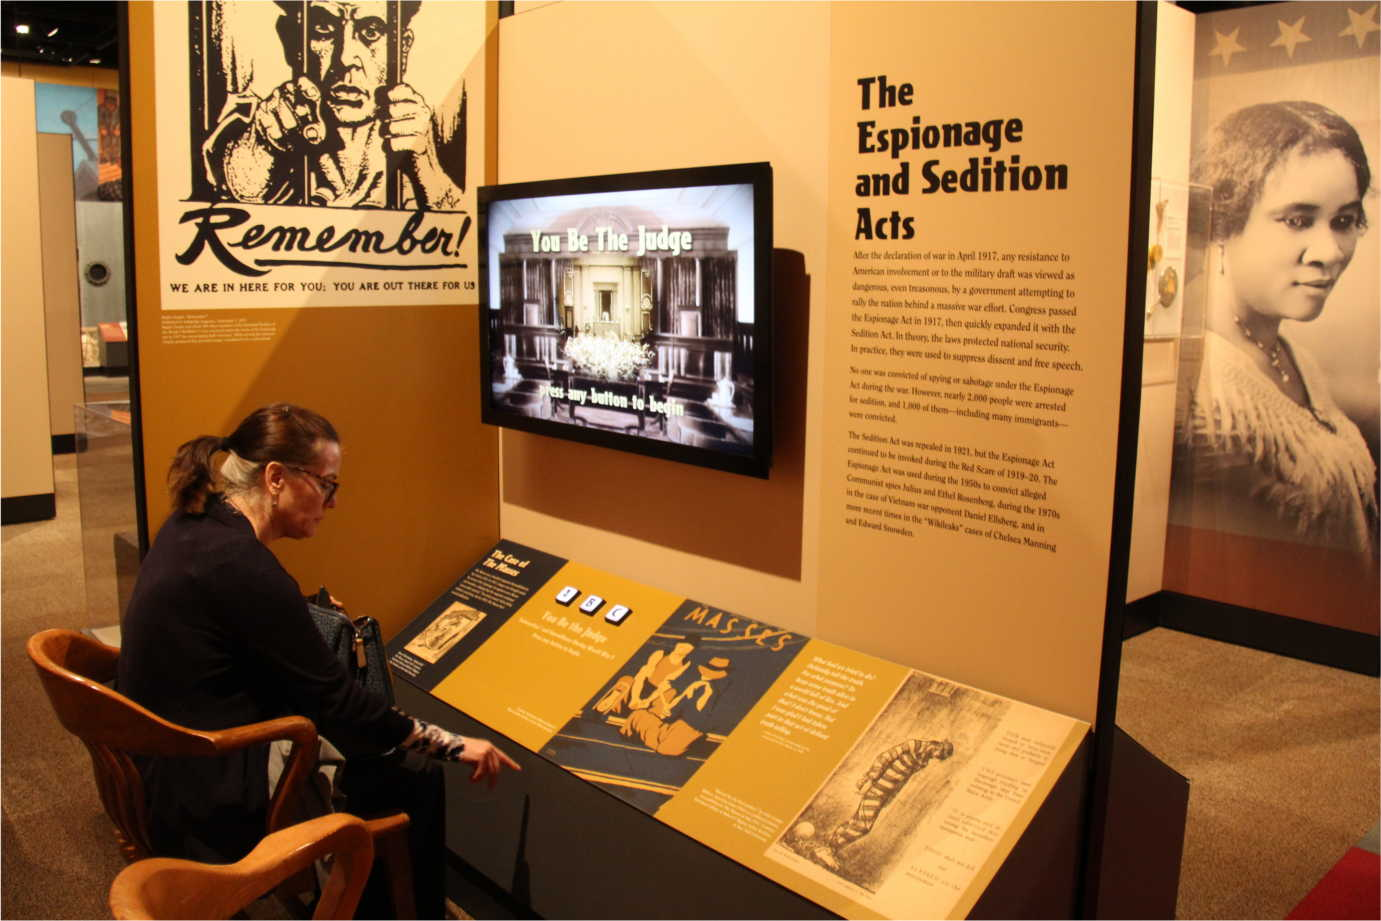 An exhibit interpreting the Espionage and Sedition Acts during World War I. Image courtesy of the Minnesota Historical Society.